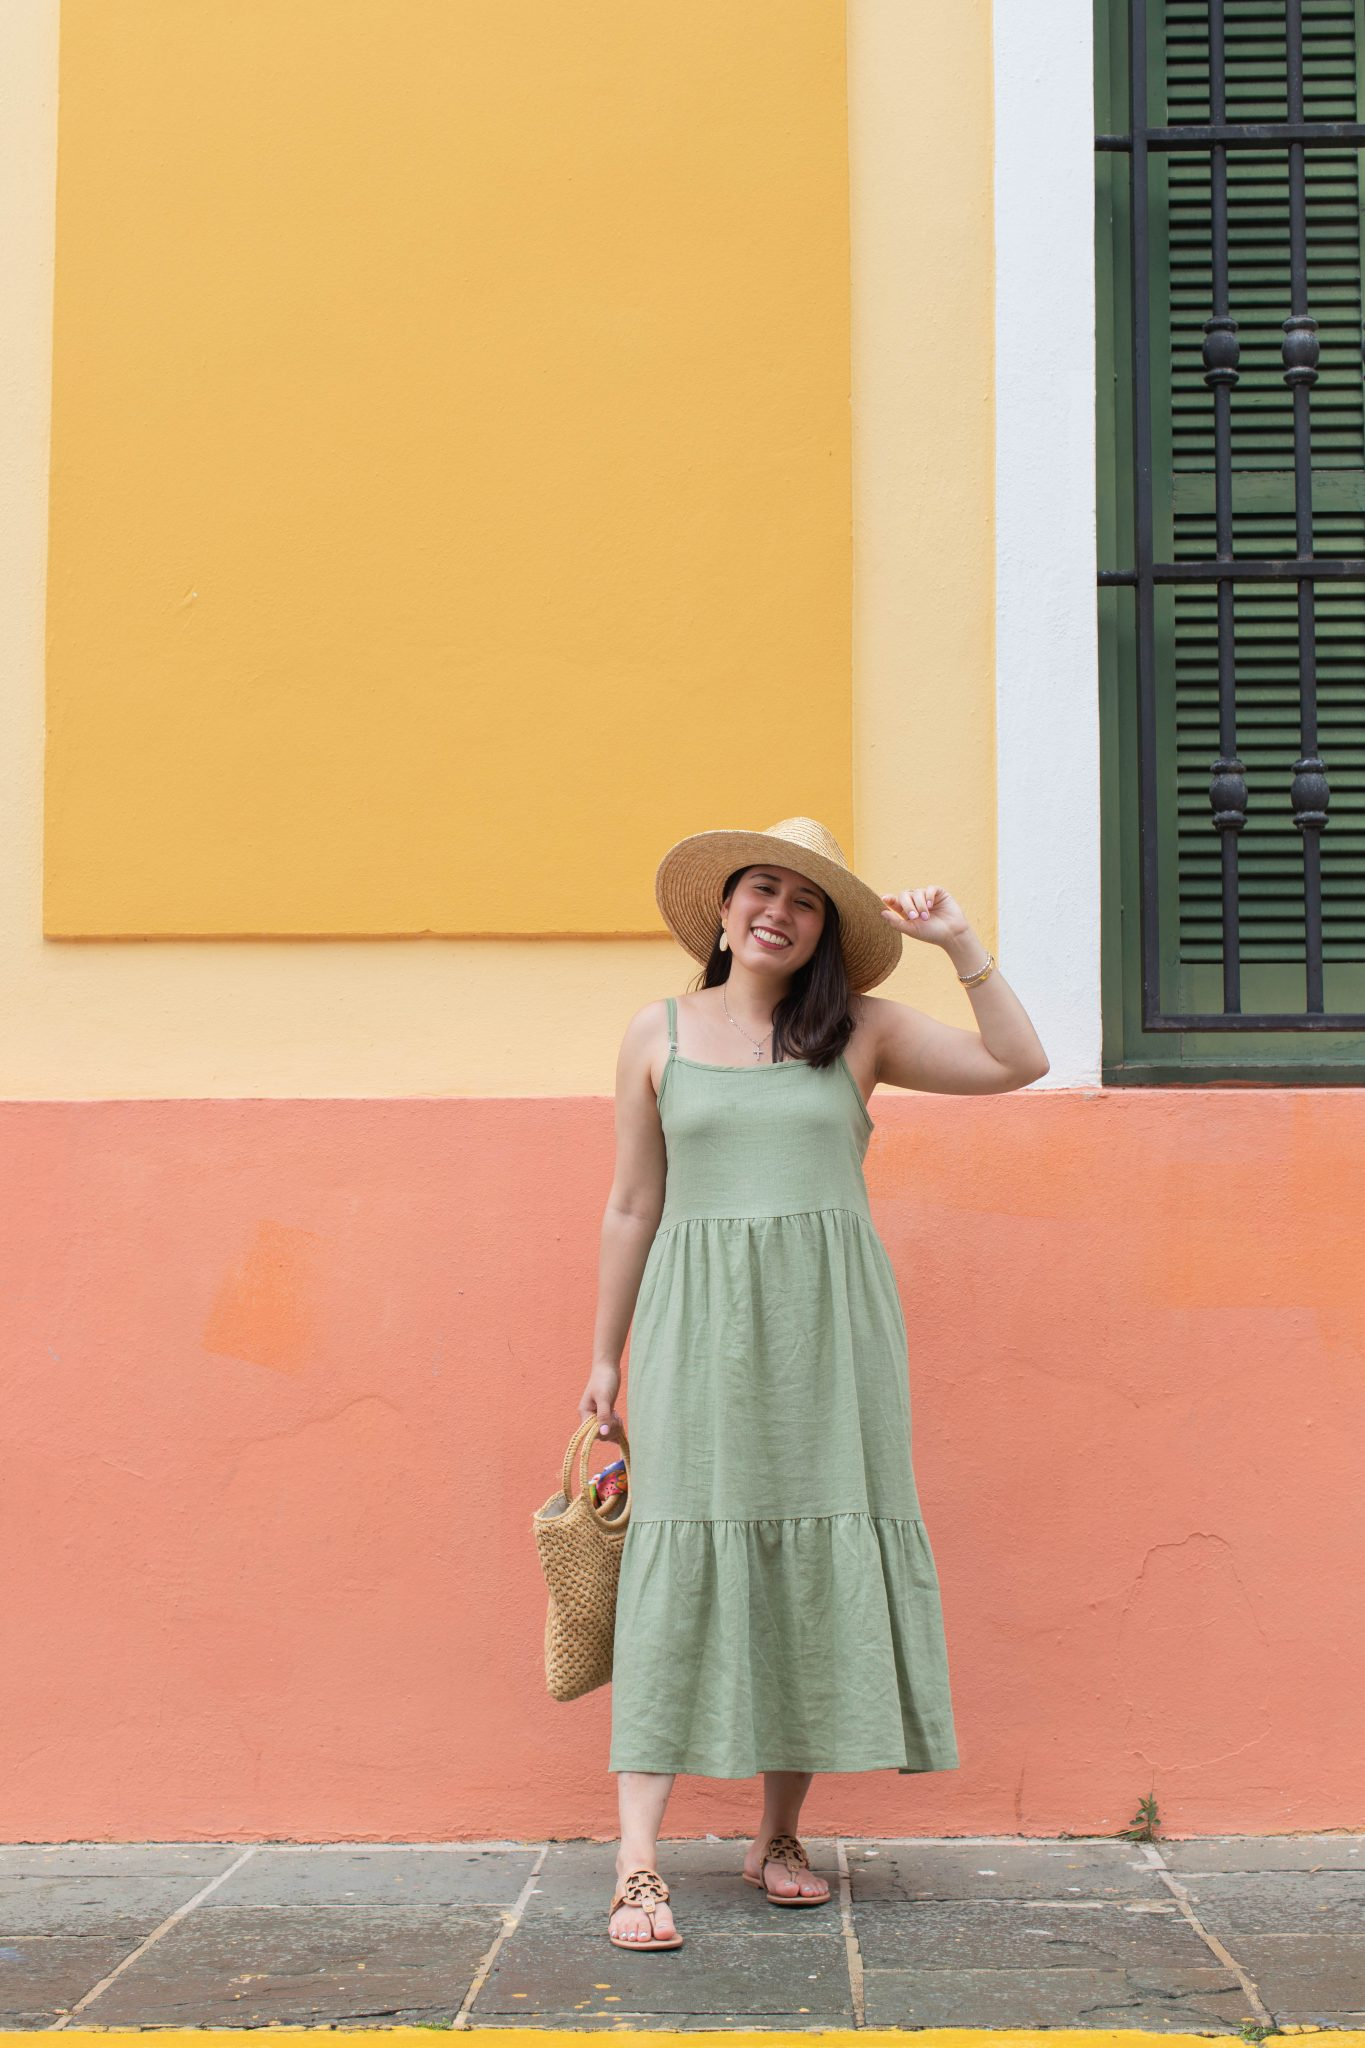 5 Essential Tips To Create Original Content And Grow Your Brand by popular New York influencer blog, Life Laugh Linda: image of a woman standing outside in front of a yellow and orange building and wearing a green maxi dress, brown sandals, straw sunhat, and holding a straw bag with a scarf tied on one of the handles.